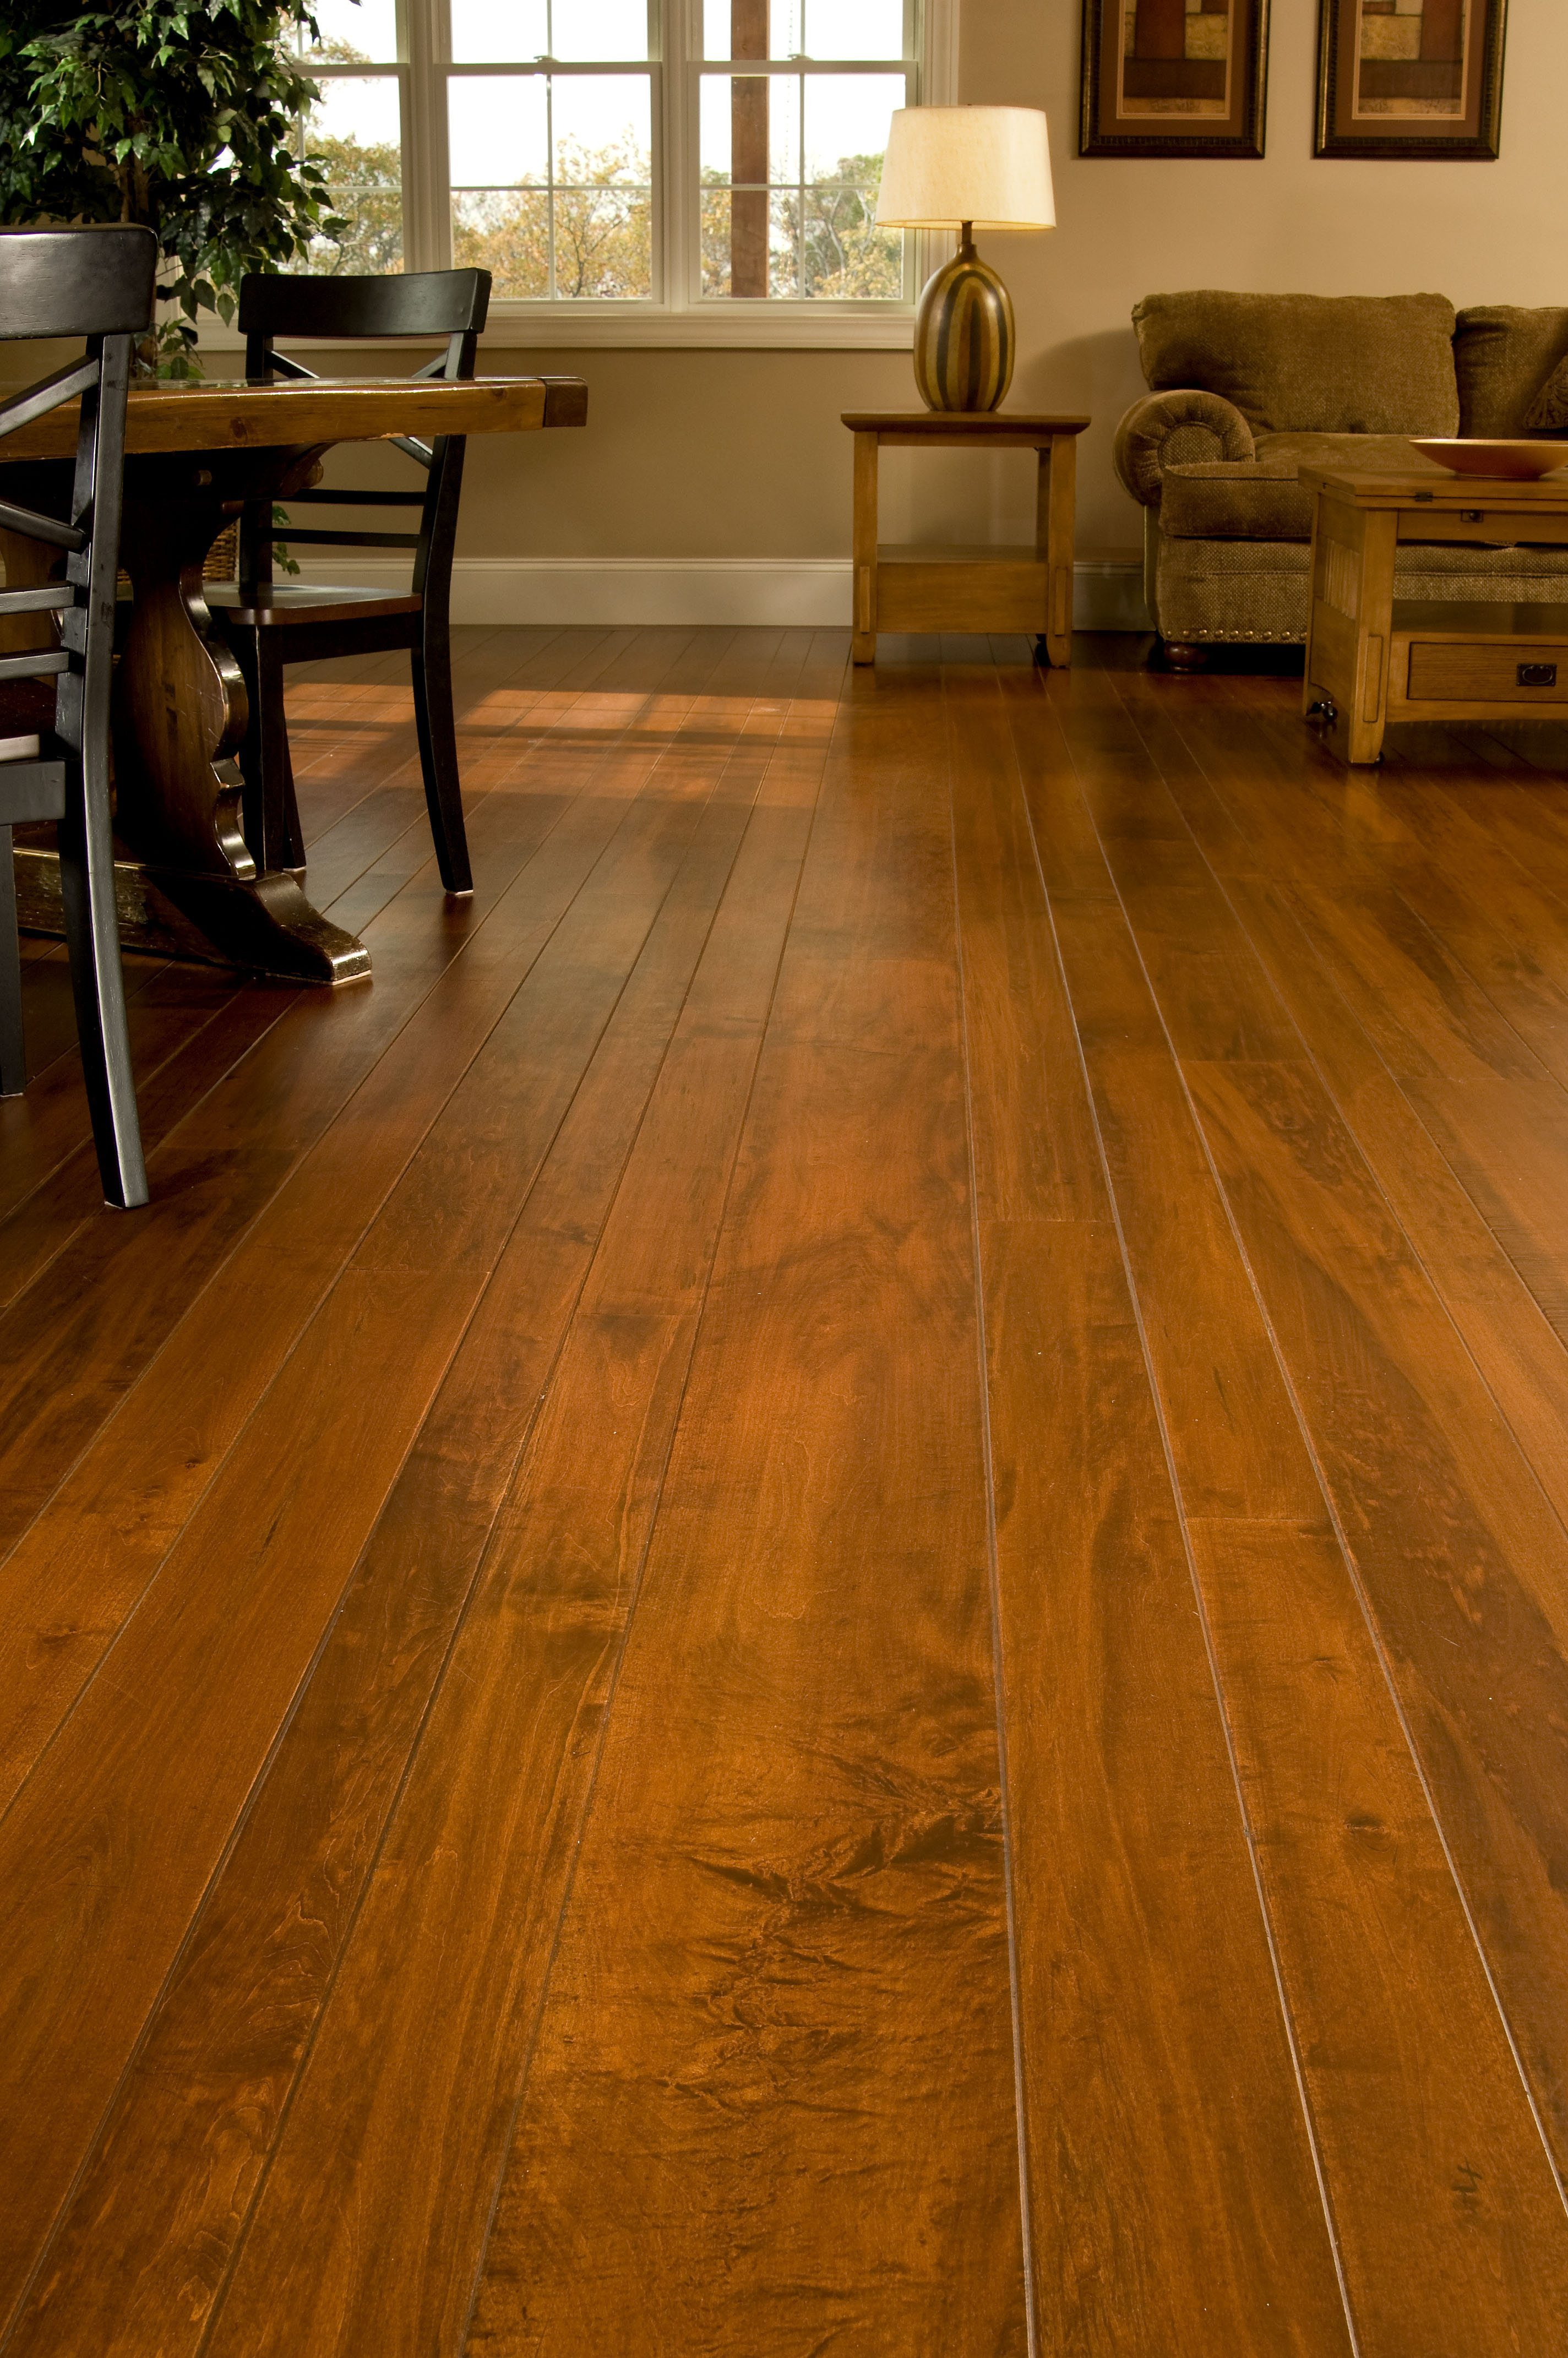 Brown Maple Hardwood Flooring In A Living Room